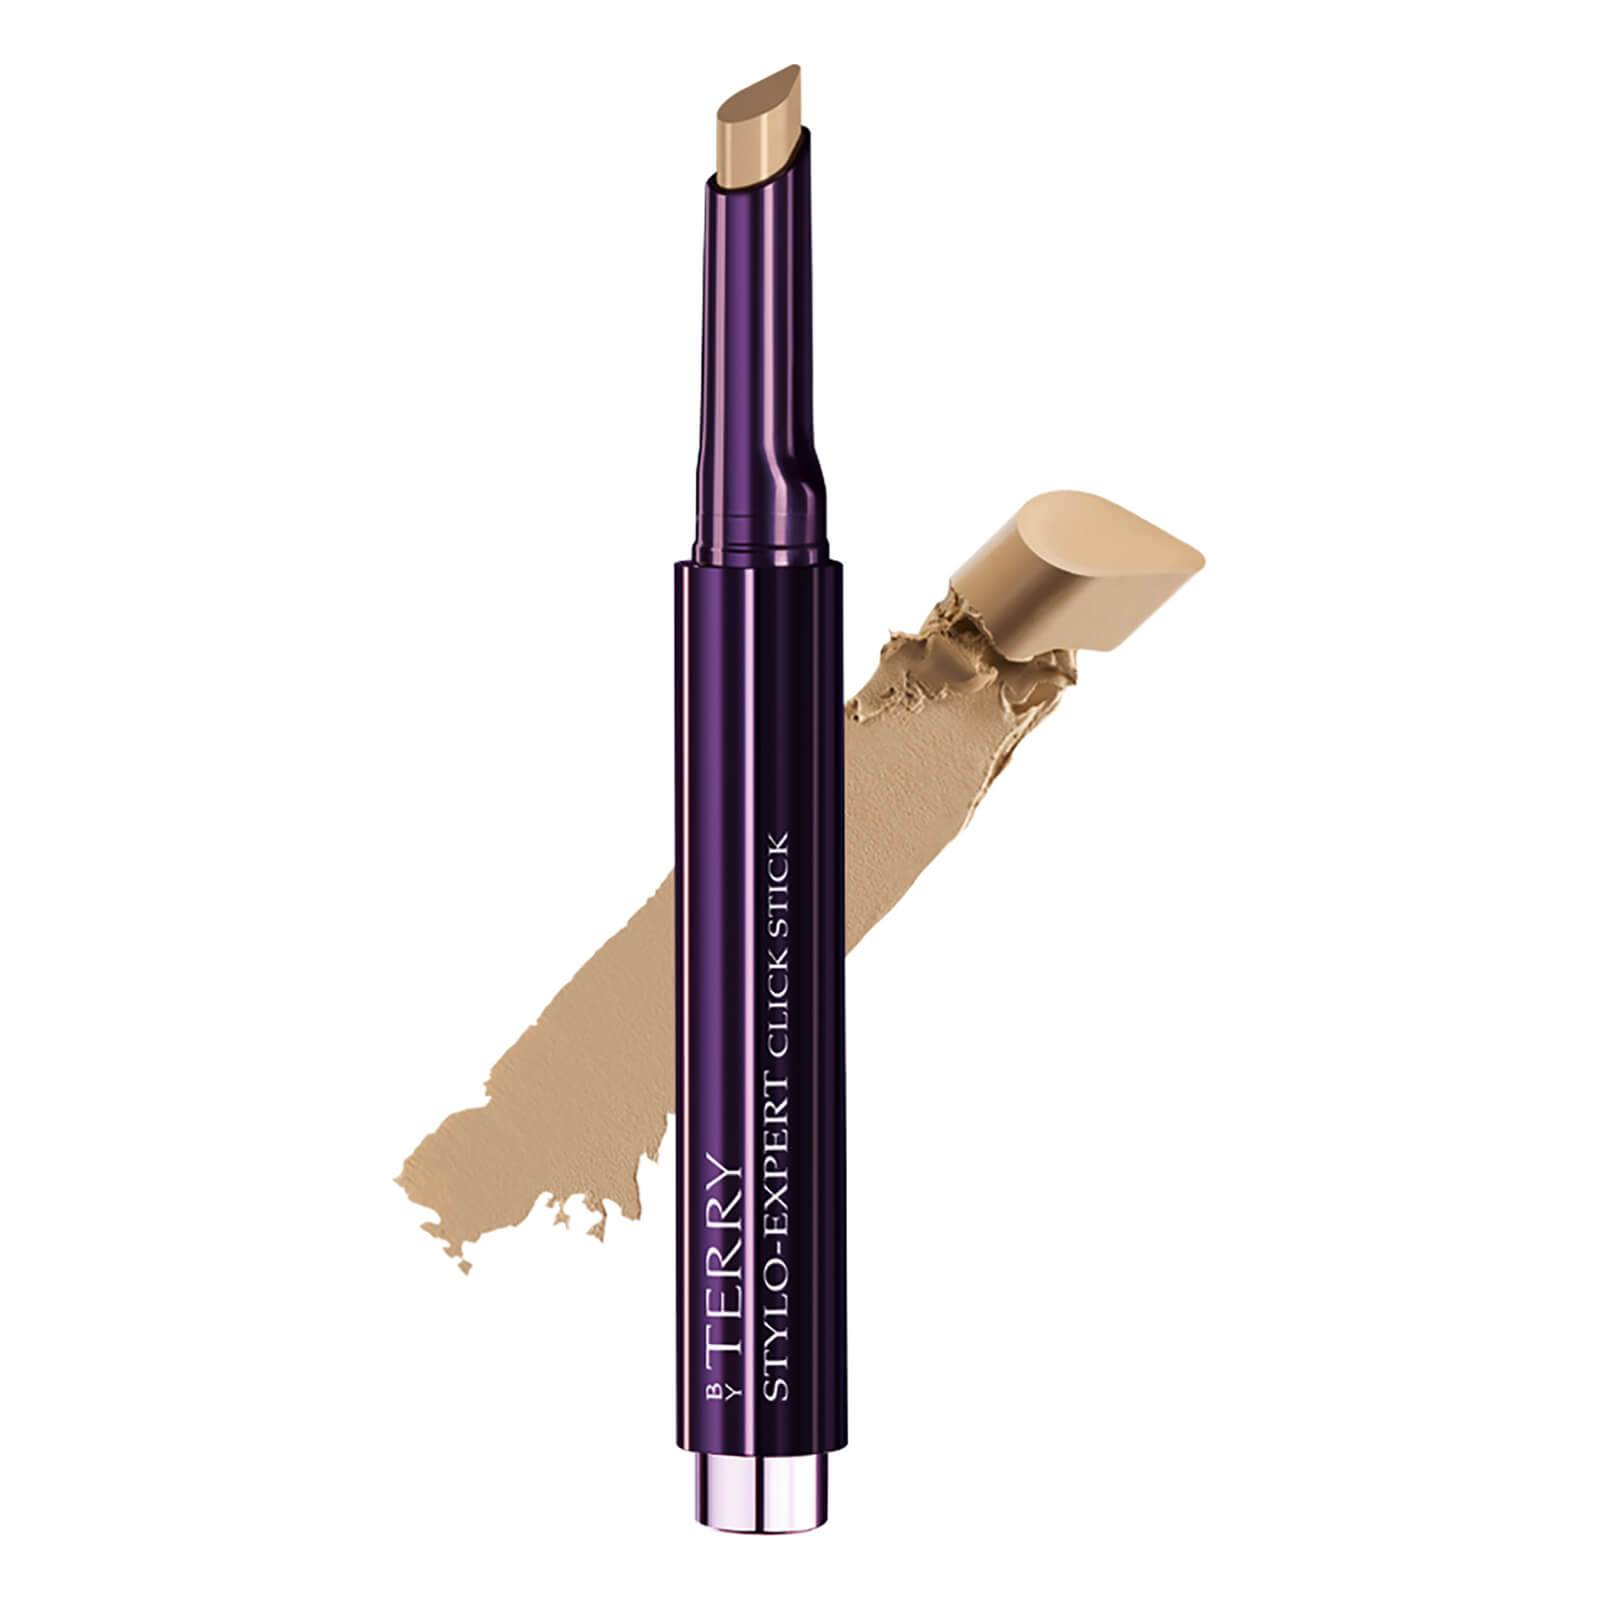 By Terry Stylo-Expert Click Stick Concealer 1g (Various Shades) - No.4.5 Soft Beige